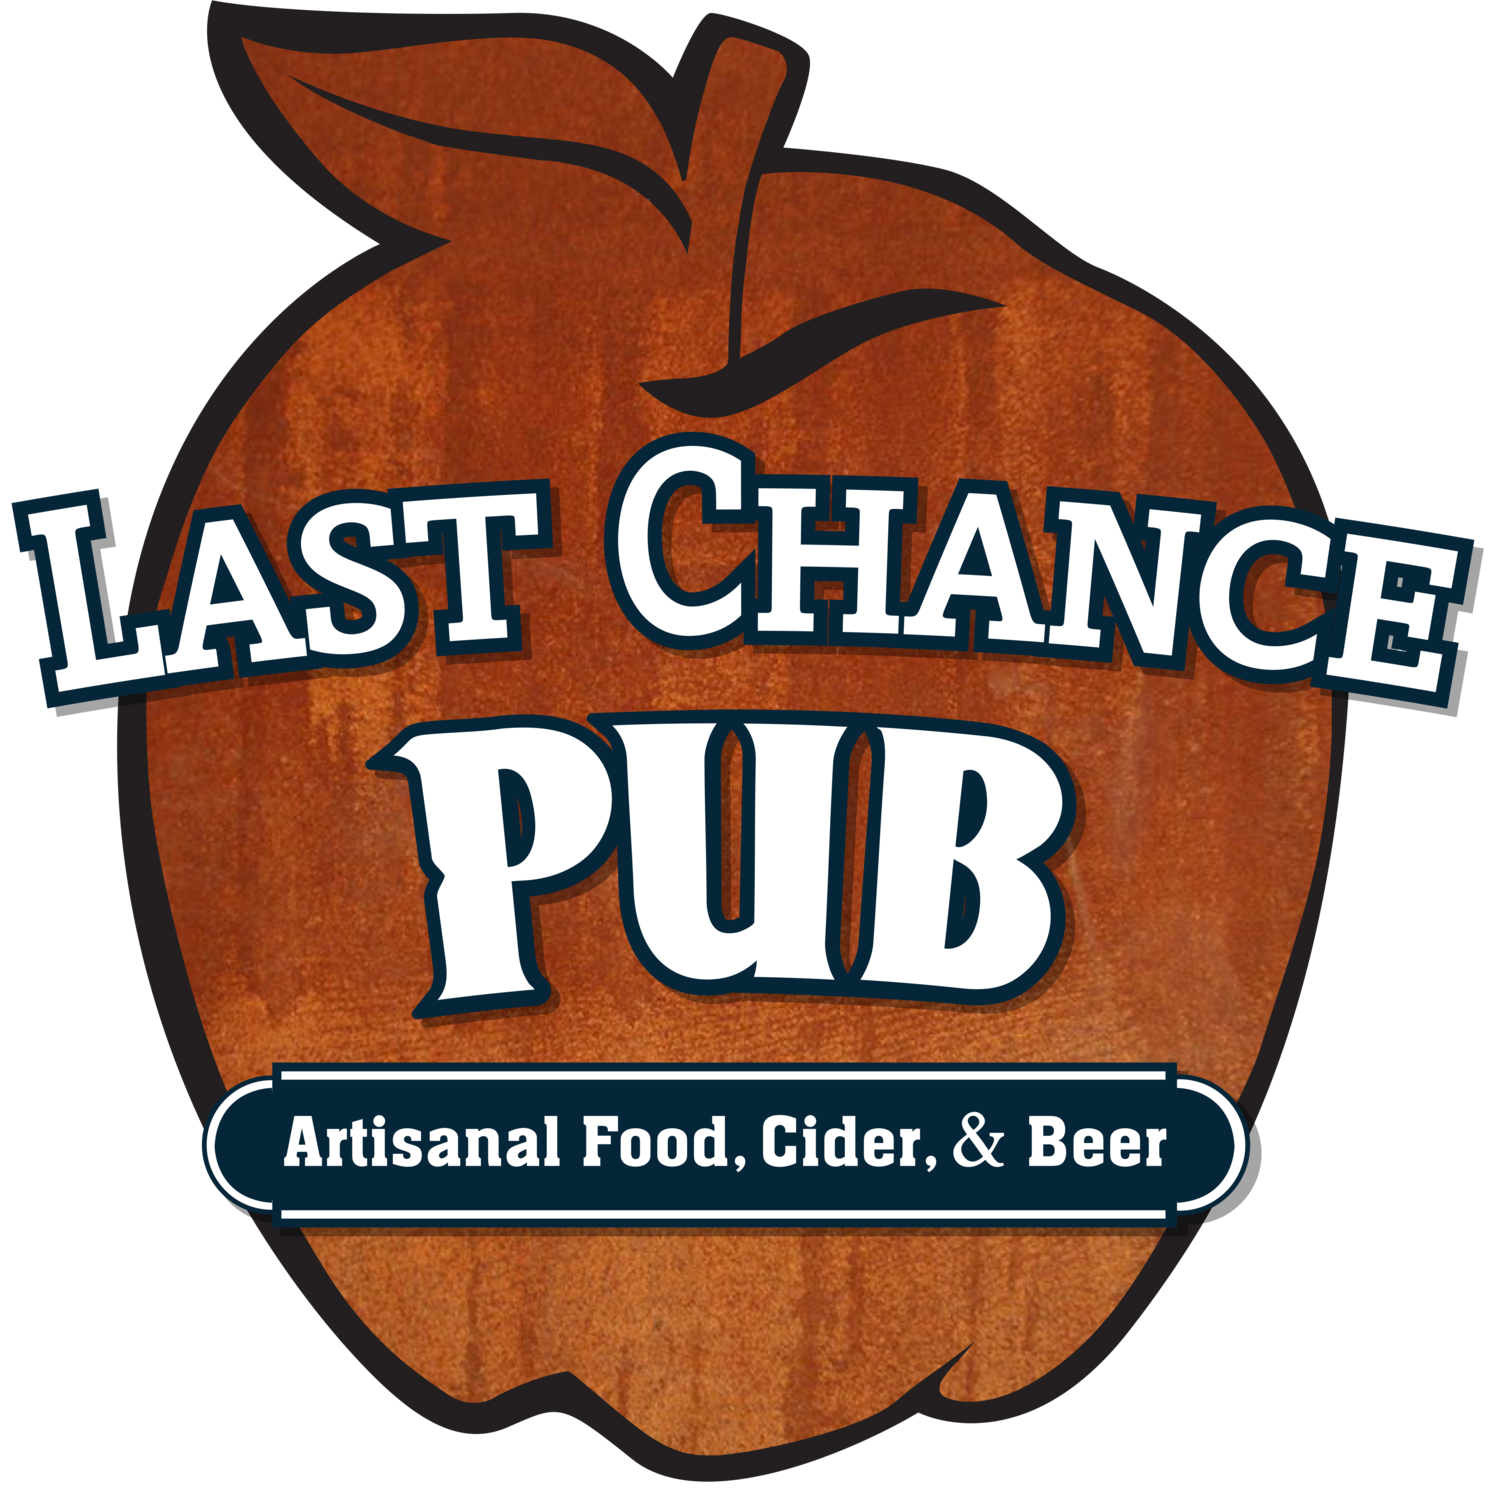 Last Chance Pub & Cider Mill